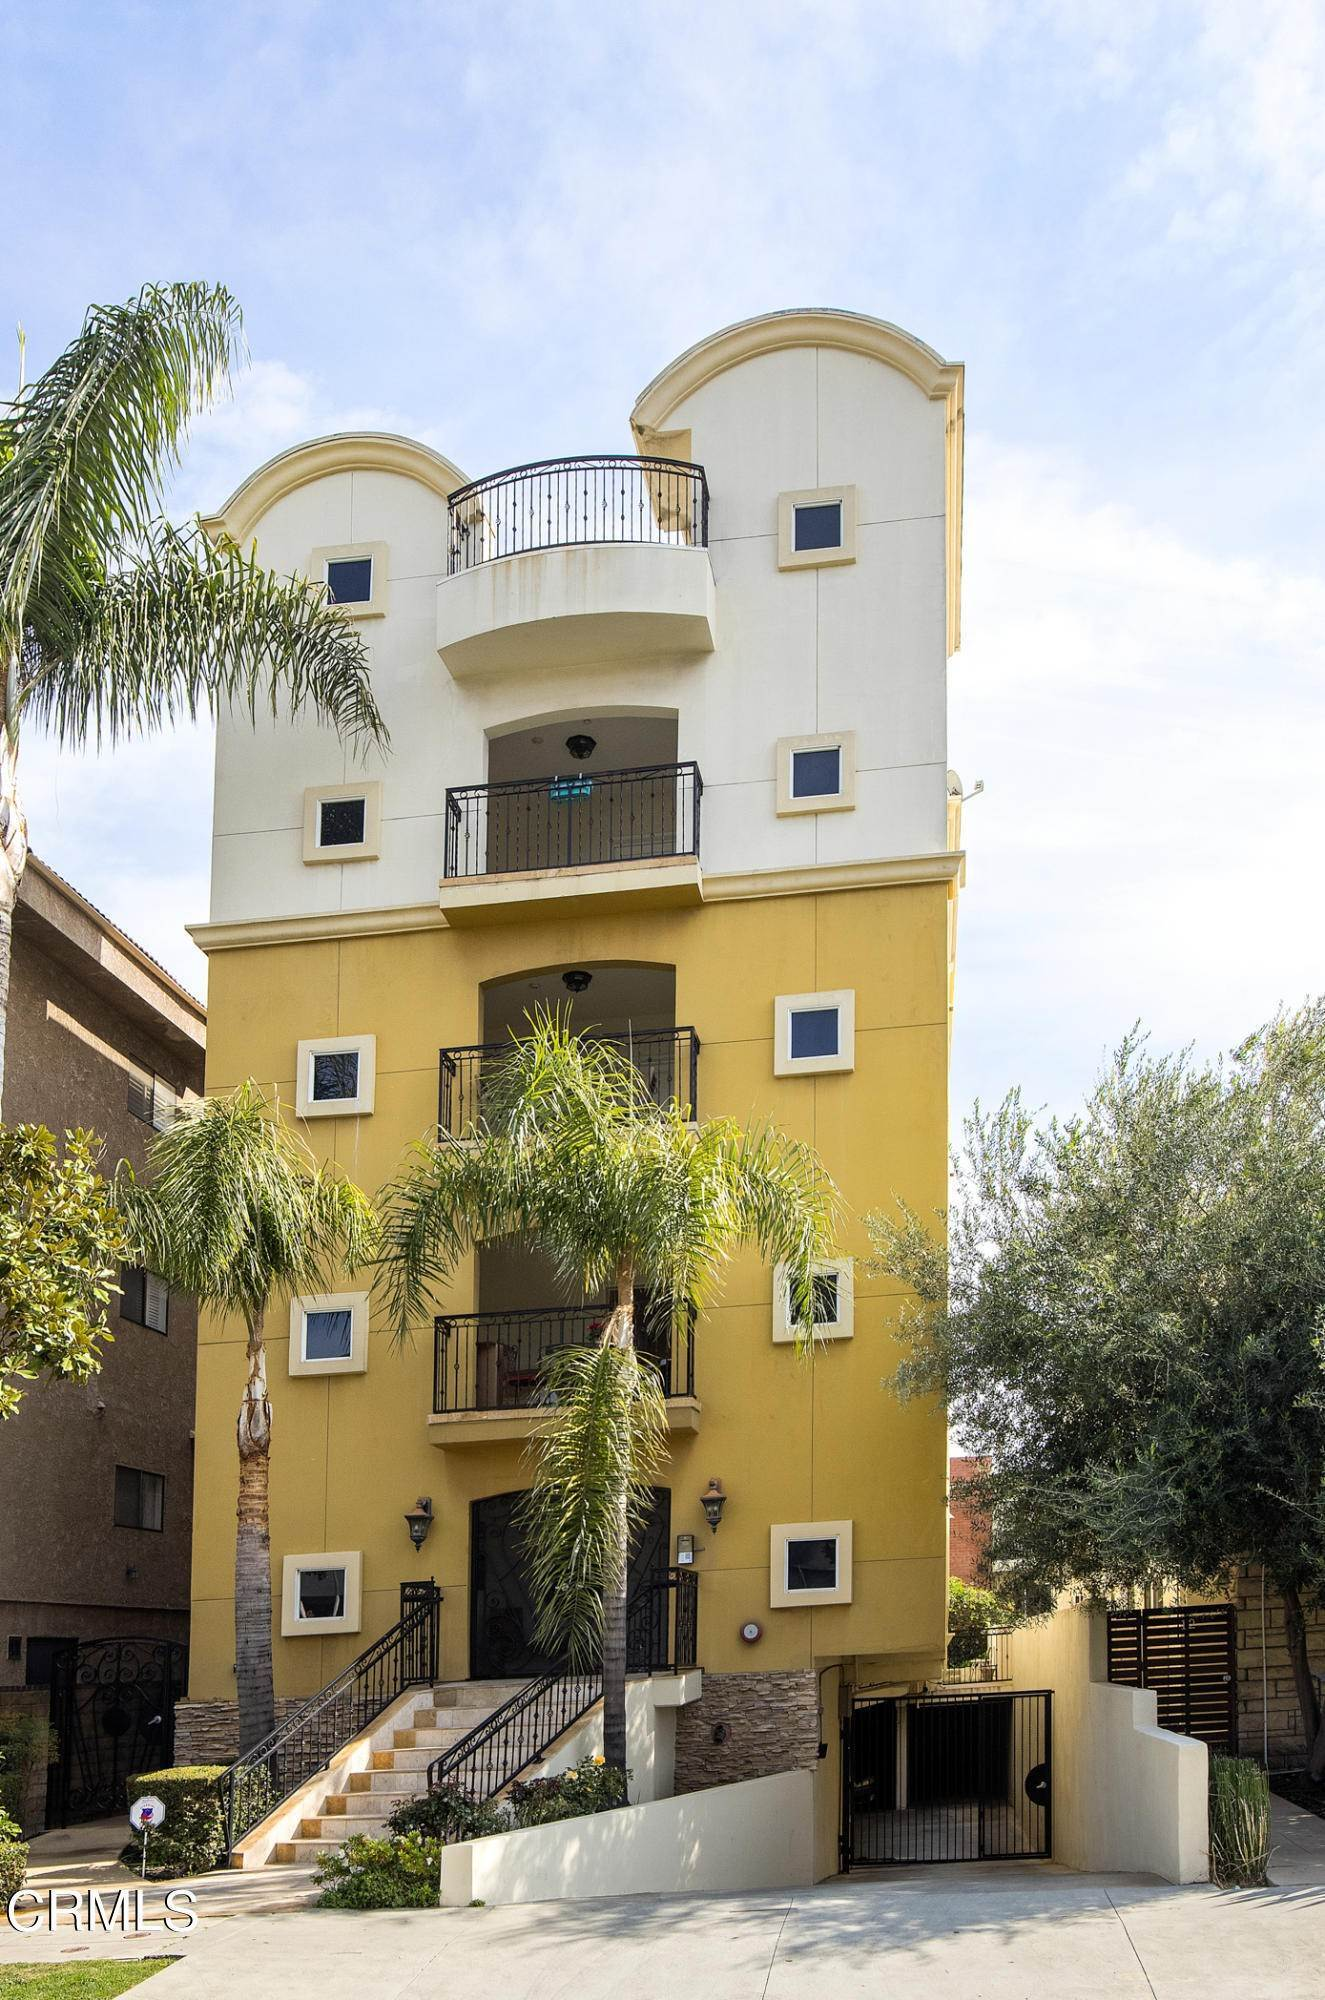 2. Condominiums for Sale at 836 South Bedford Street #200 836 South Bedford Street Los Angeles, California 90035 United States